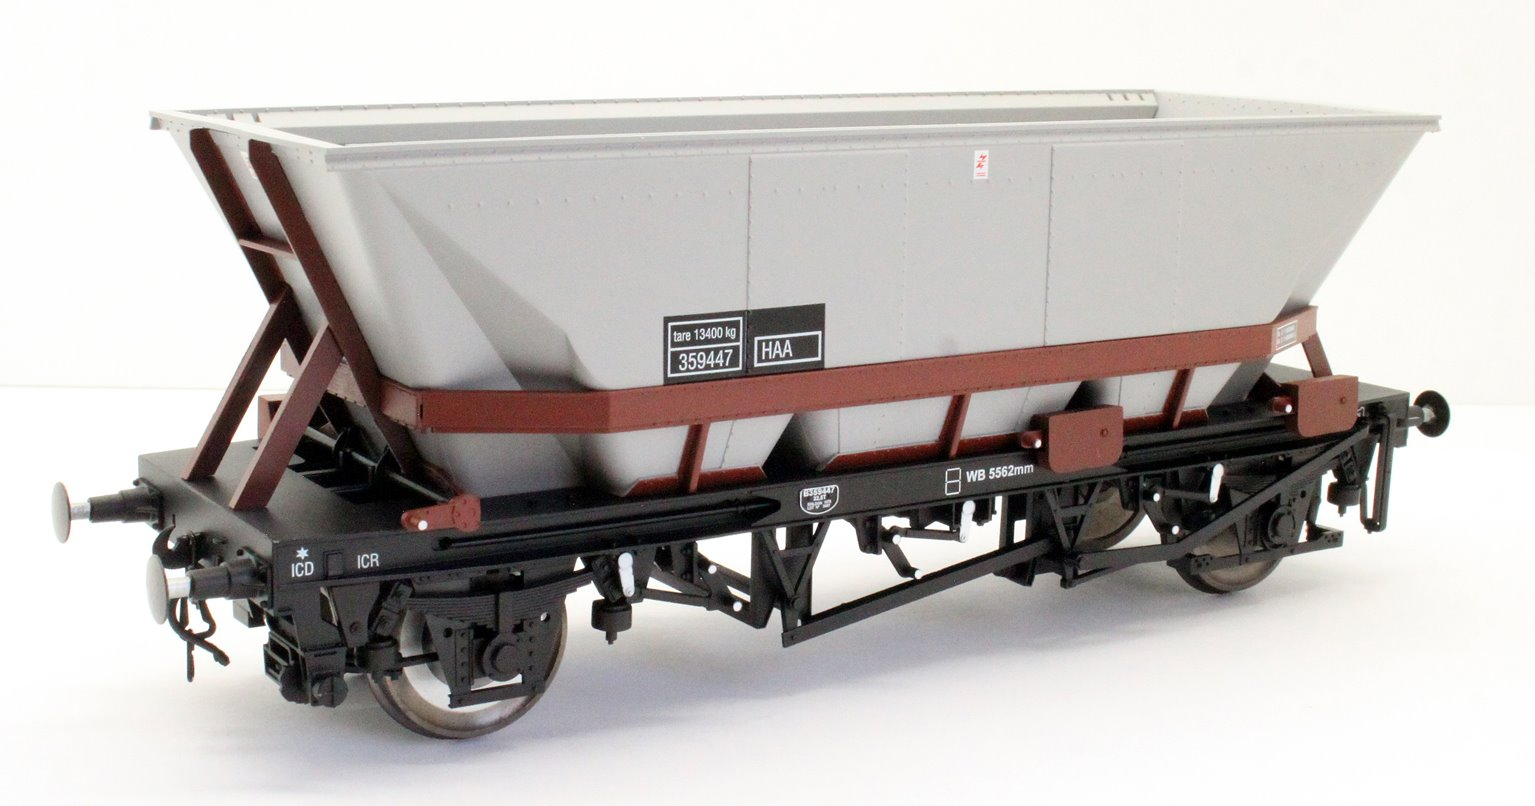 Dapol 7F-048-007 MGR HAA Coal Wagon (brown cradle) #359447